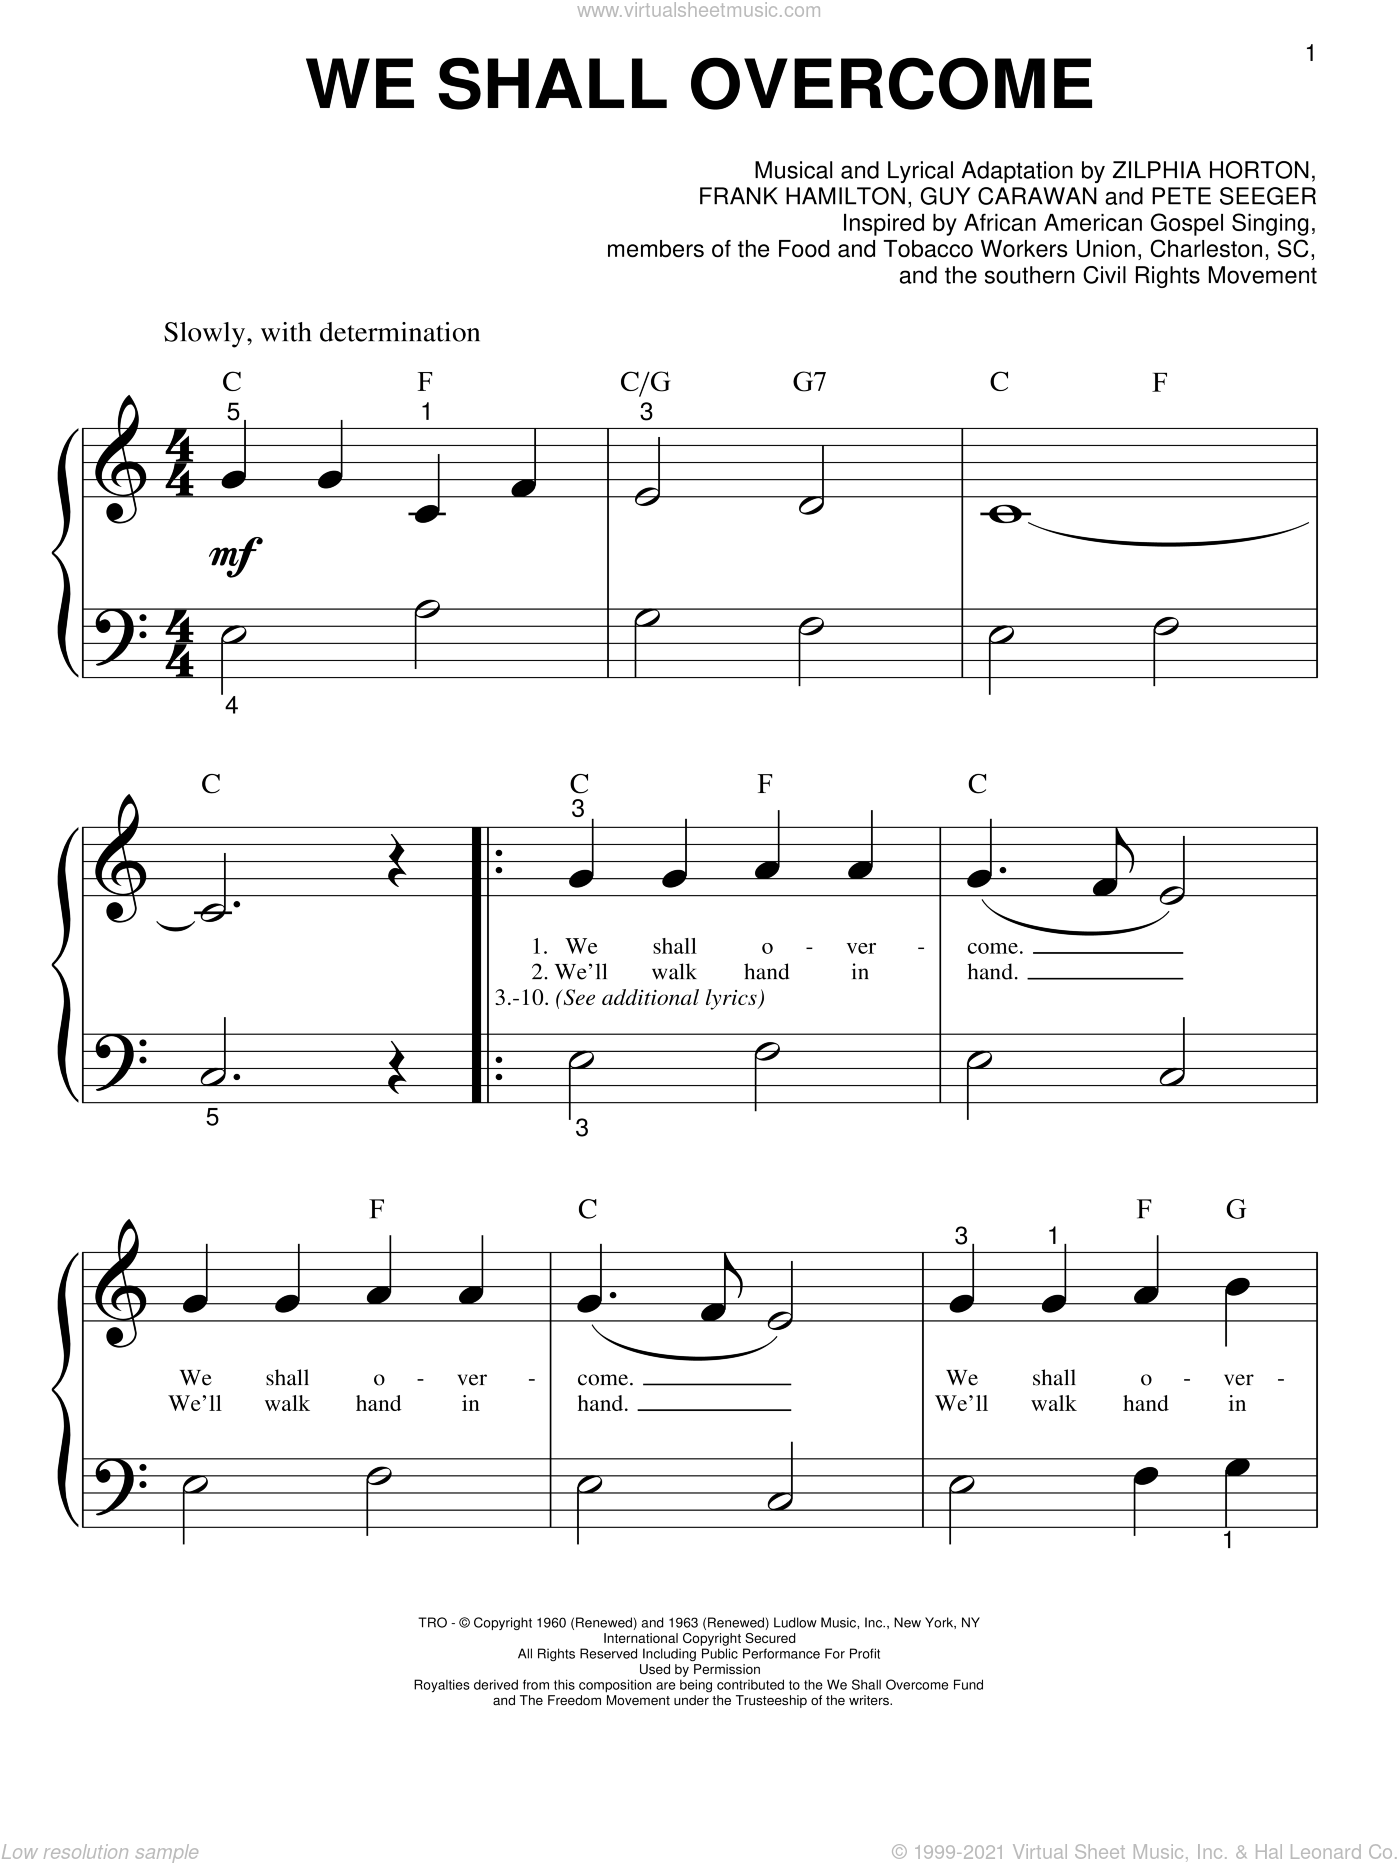 We Shall Overcome sheet music for piano solo (big note book) by Pete Seeger, Joan Baez, Frank Hamilton, Guy Carawan and Zilphia Horton, easy piano (big note book)